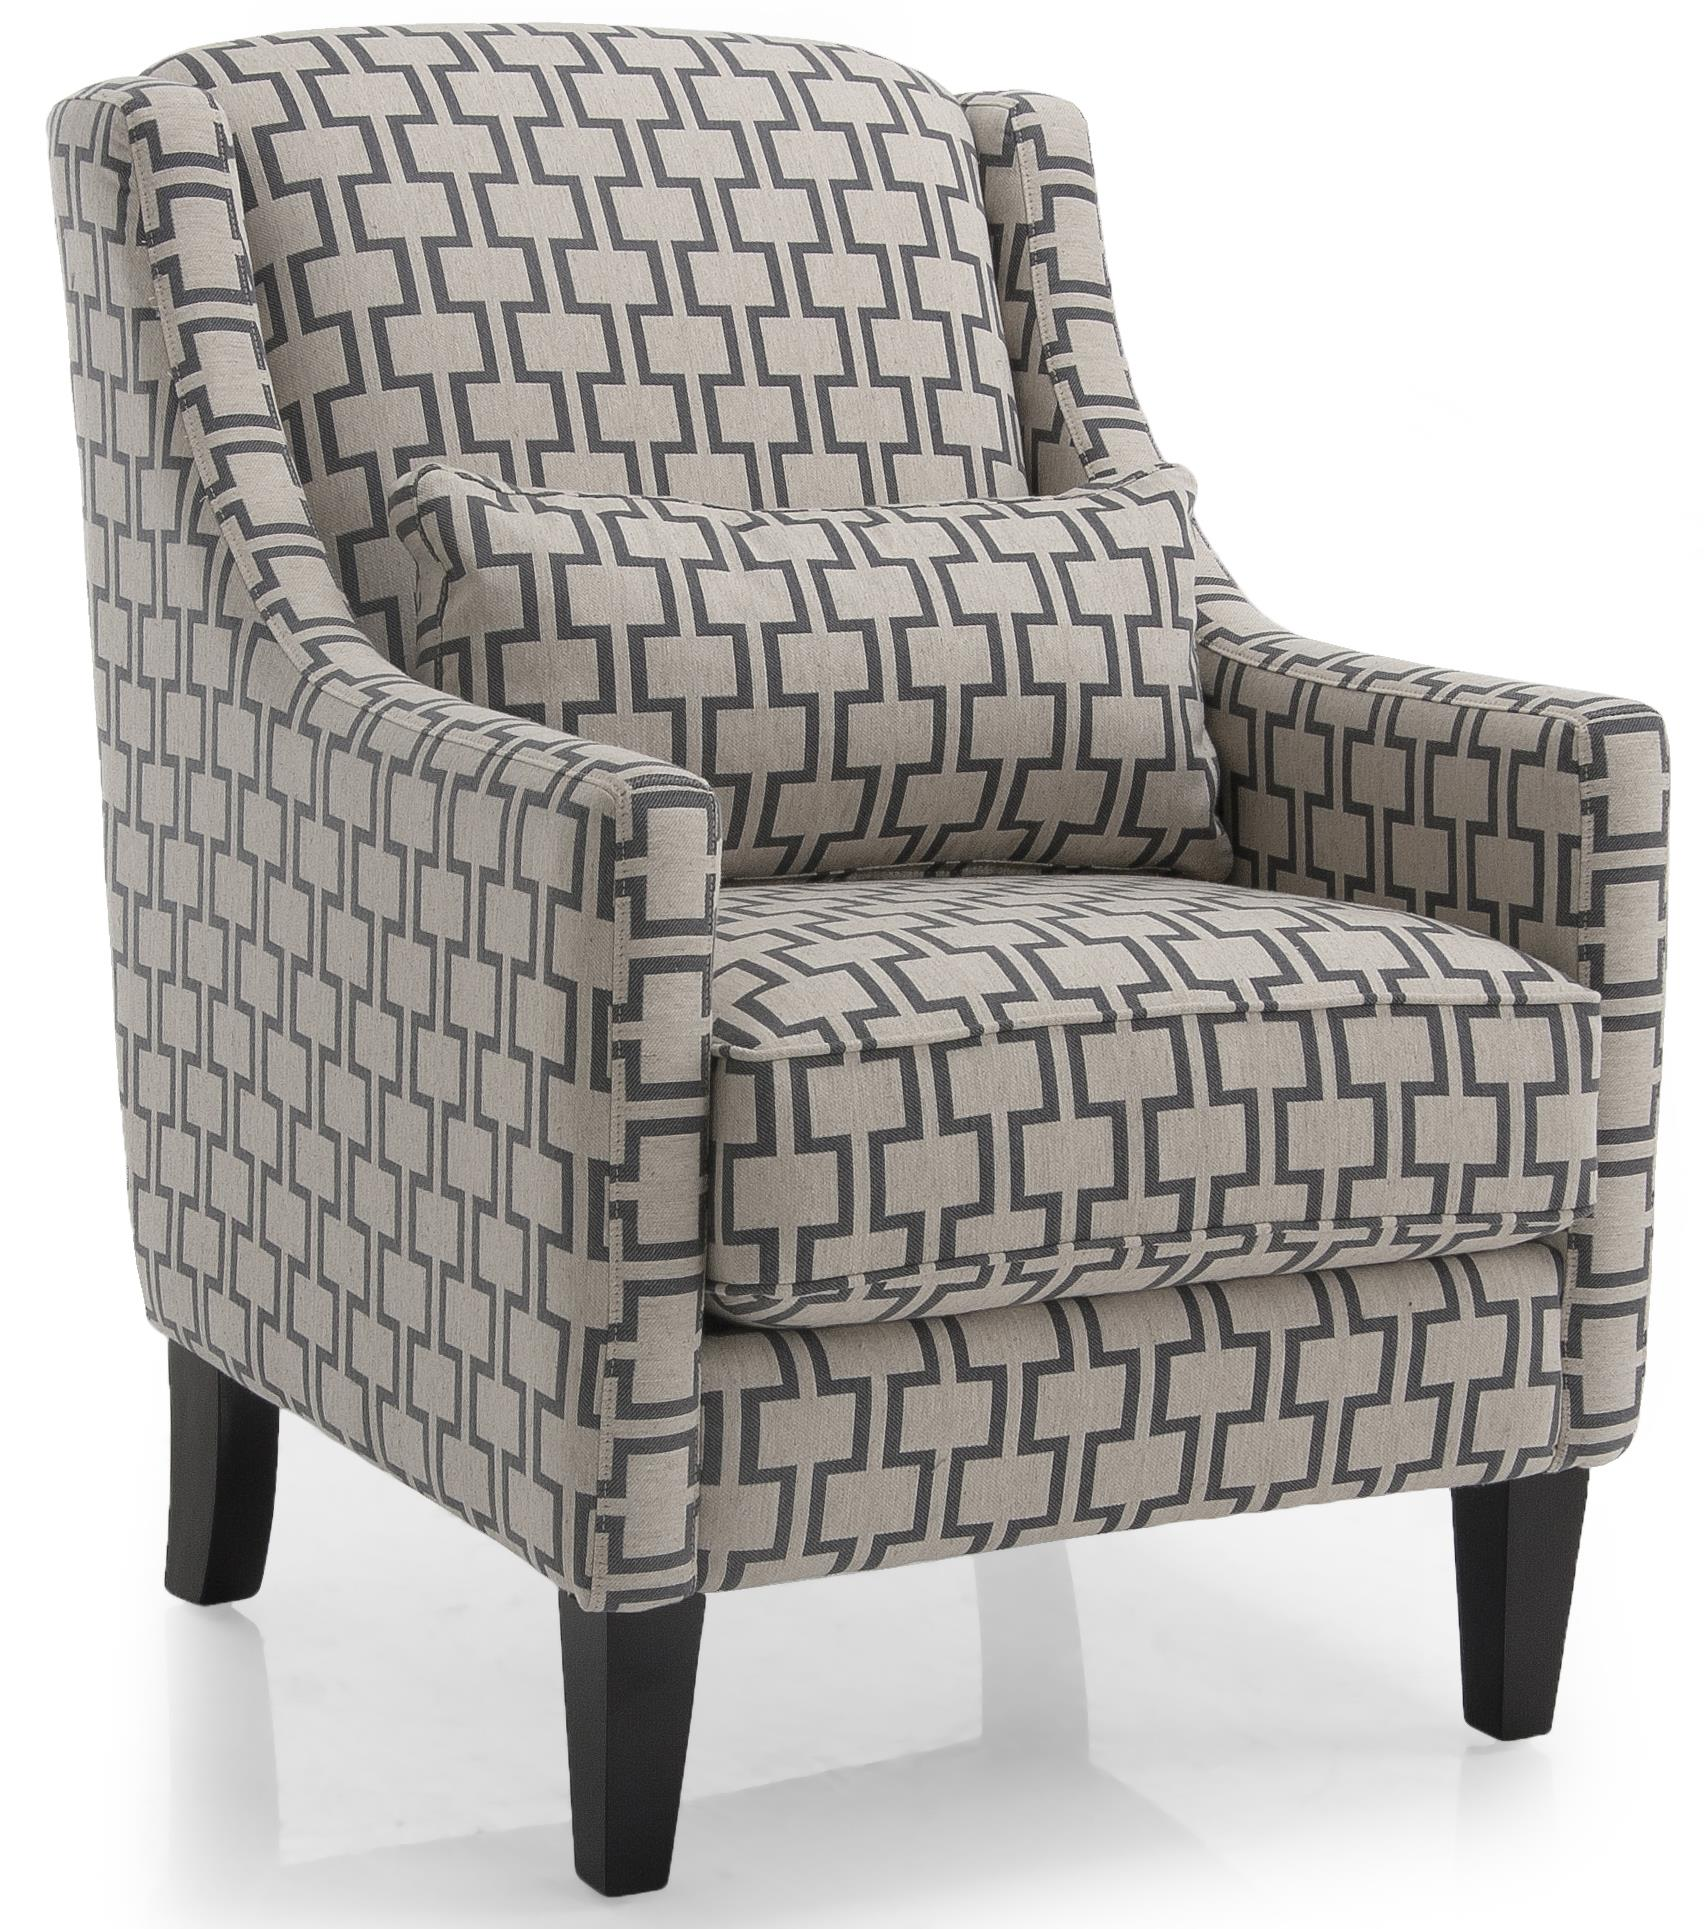 7606 Chair by Decor-Rest at Reid's Furniture